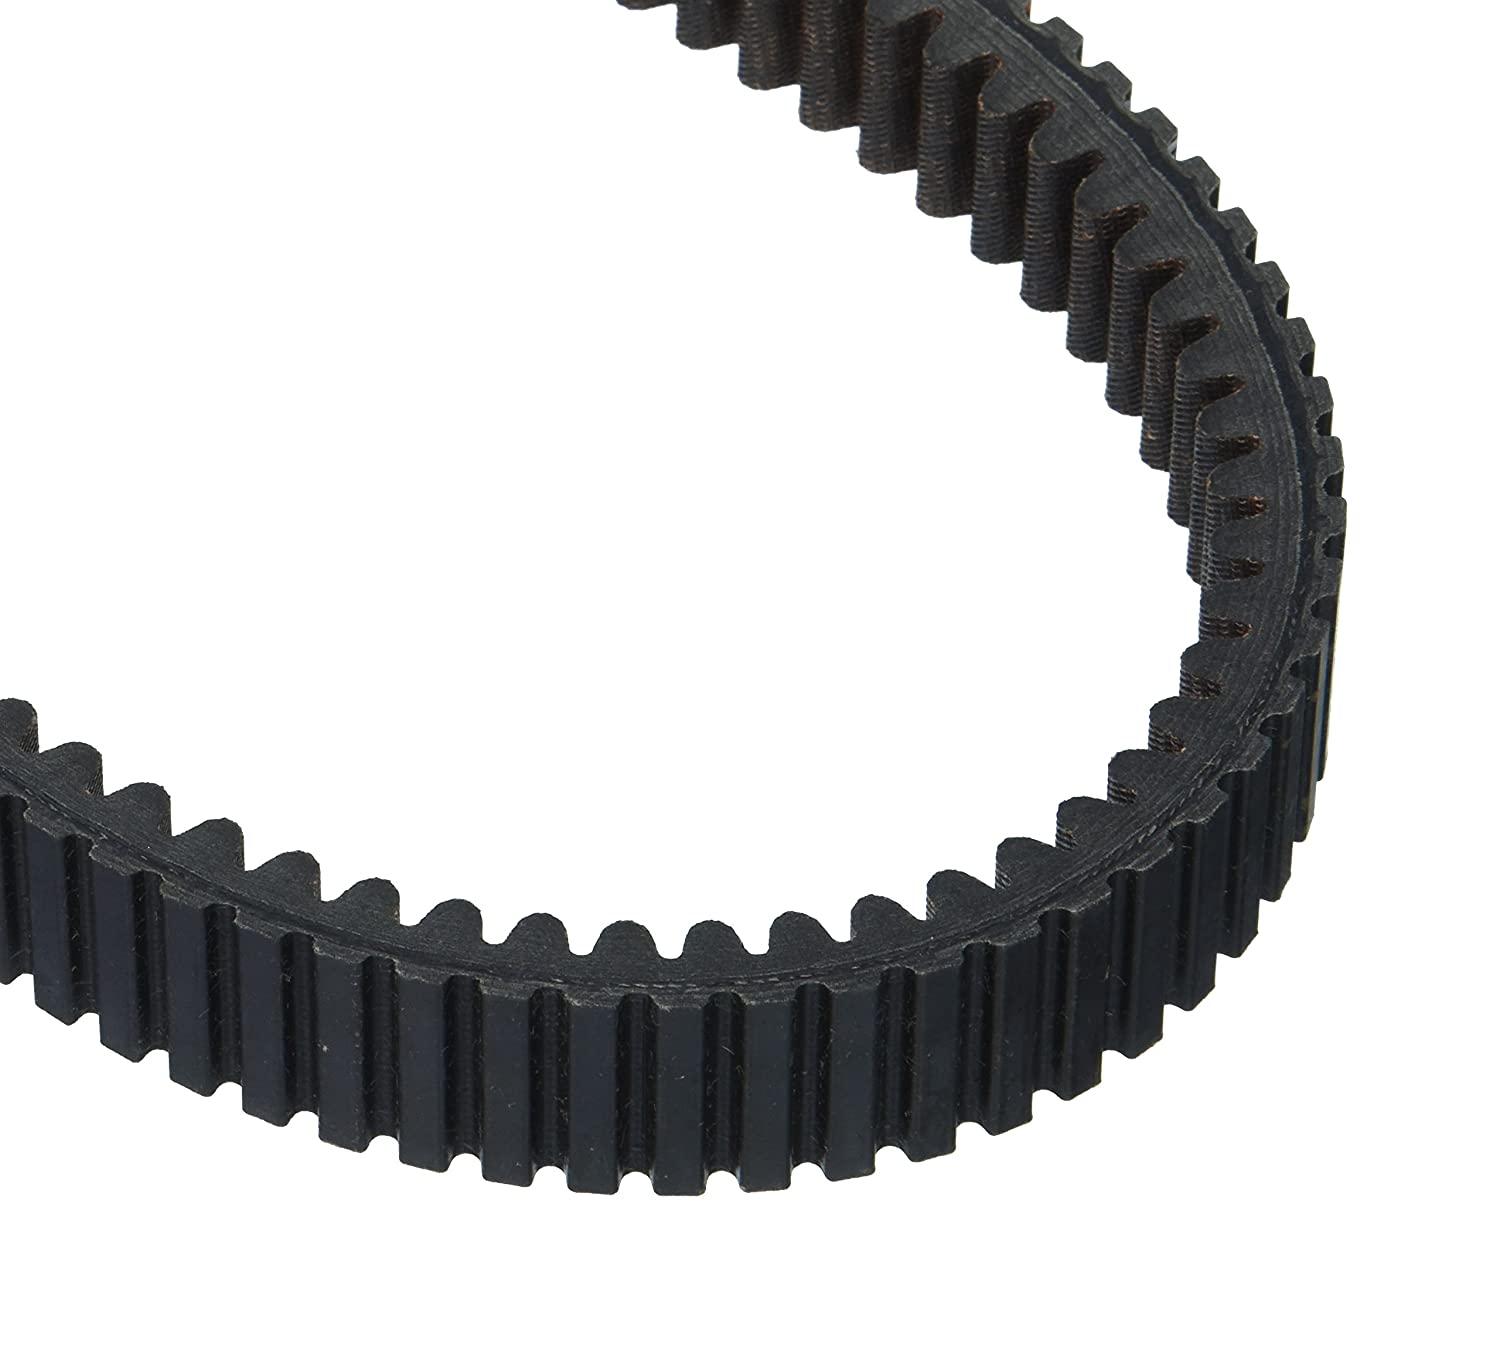 Gates 25G4108 Gates G-Force Drive Belt Polaris 1000 General 2016-2017